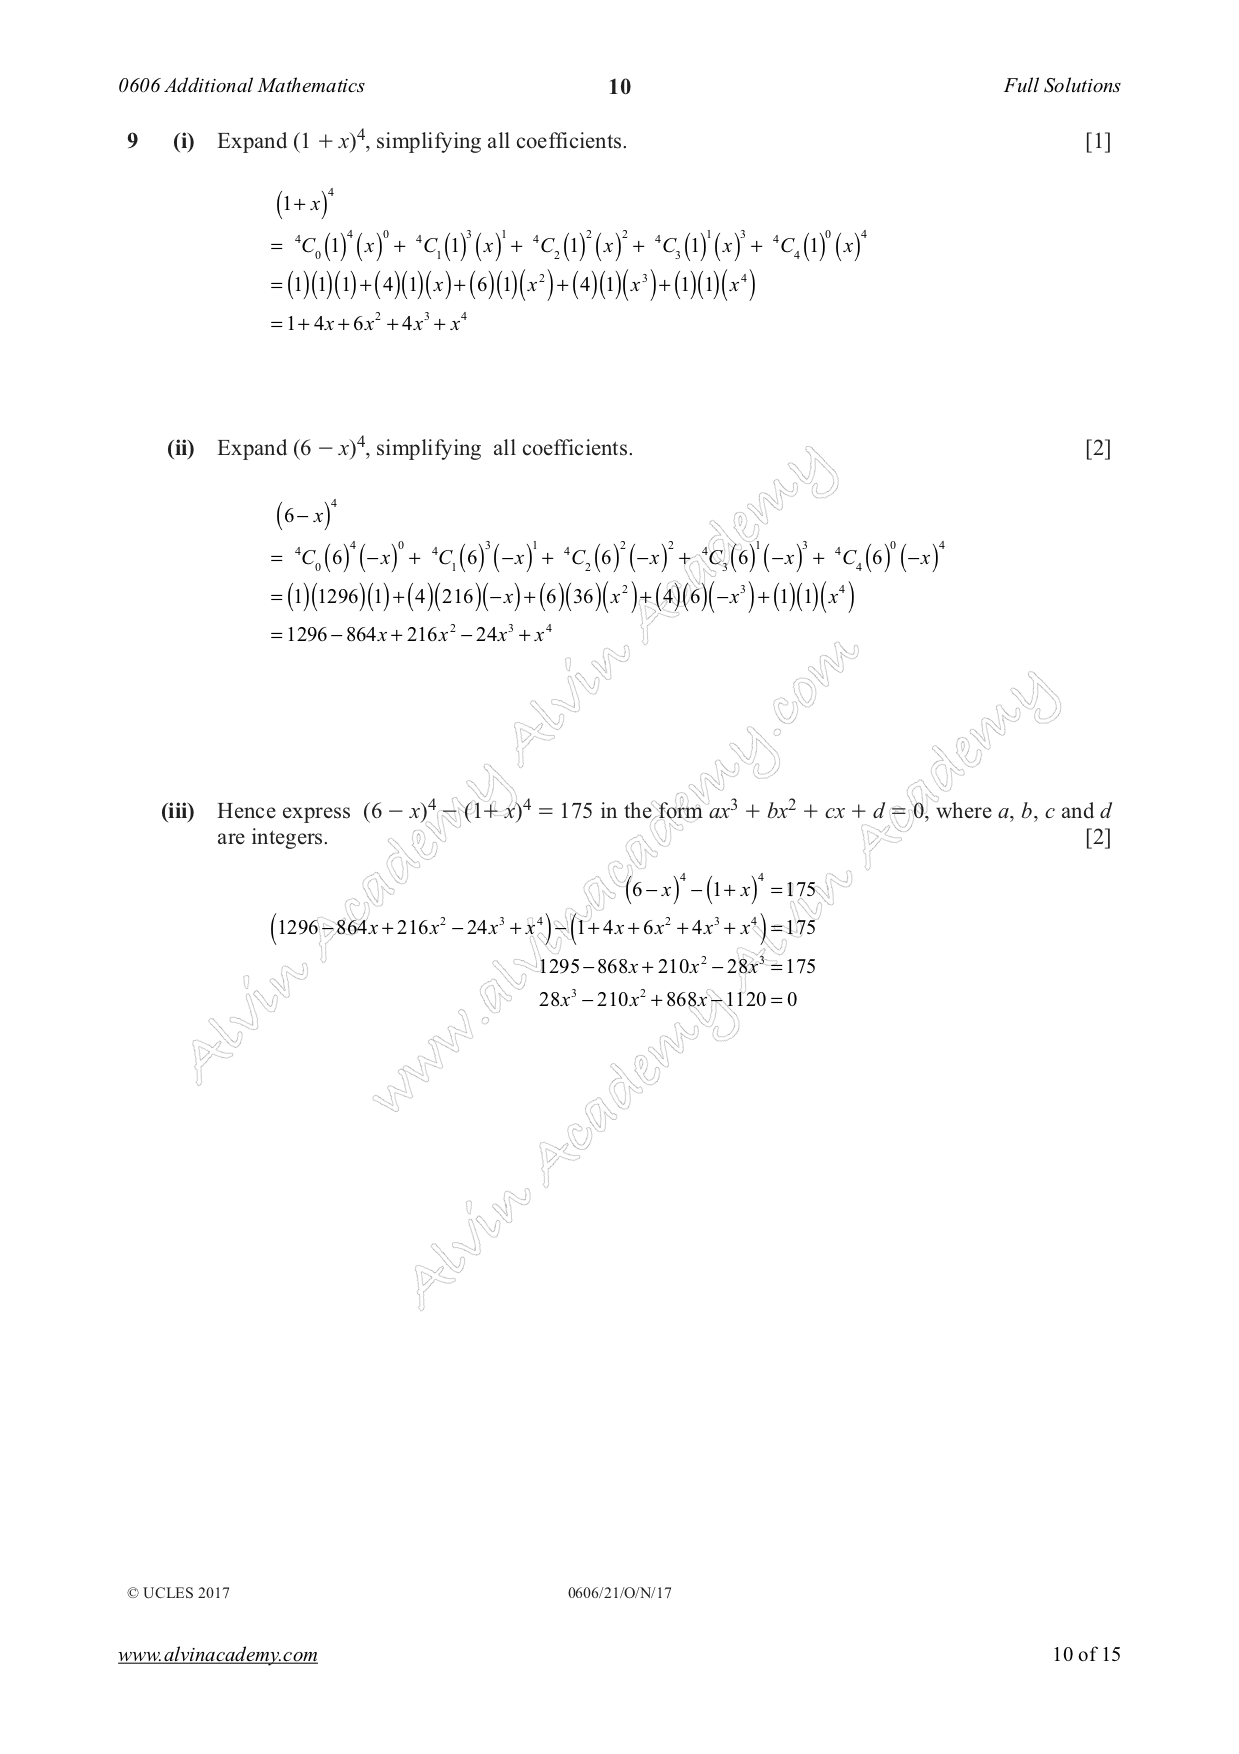 Alvin Academy   Learning Mathematics   Page 3